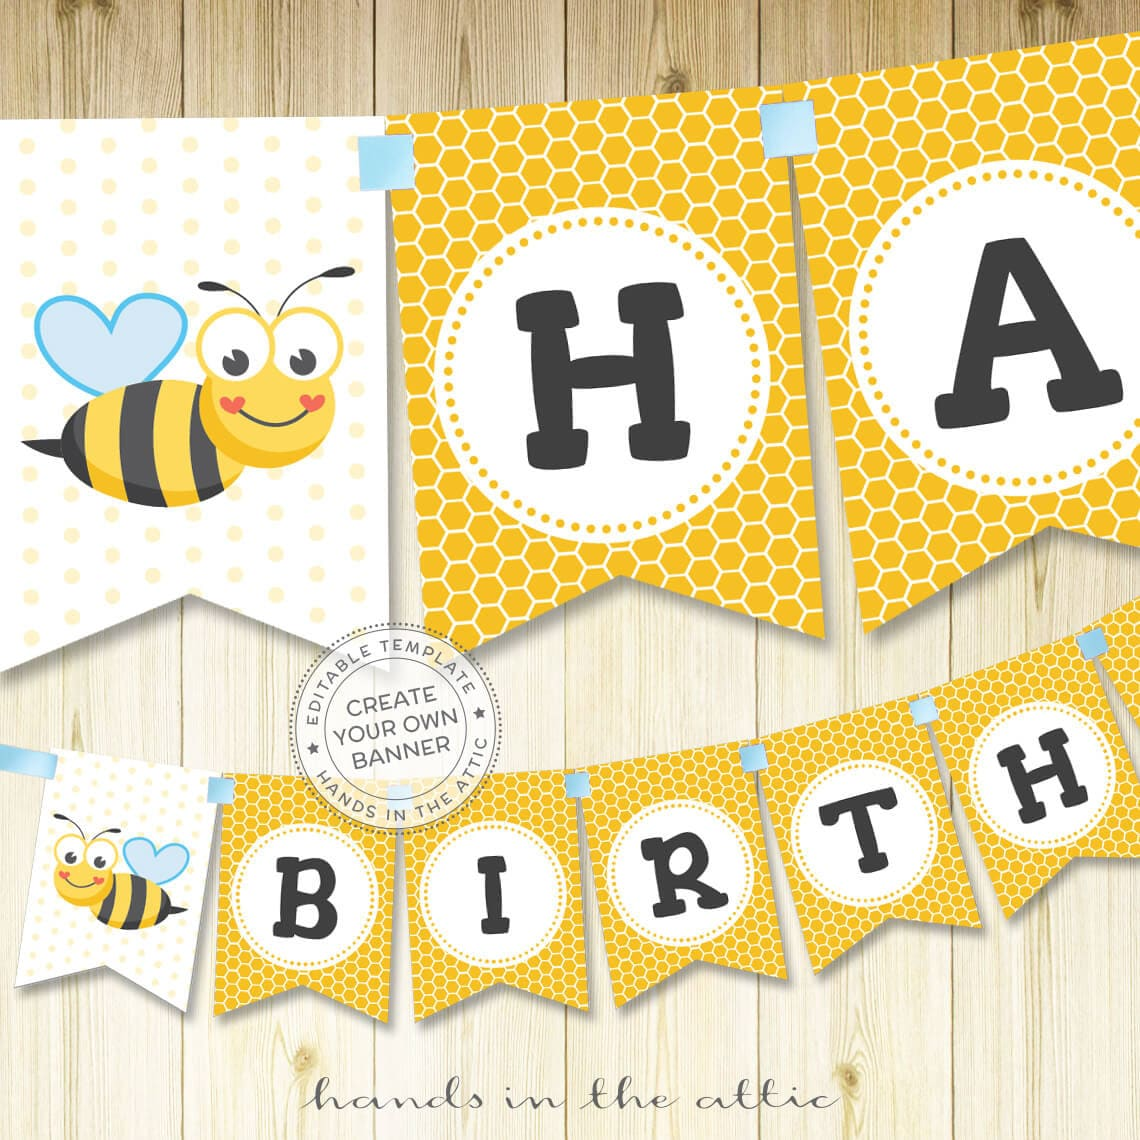 Bumblebee birthday party banner bumble bee banner alphabet zoom filmwisefo Images